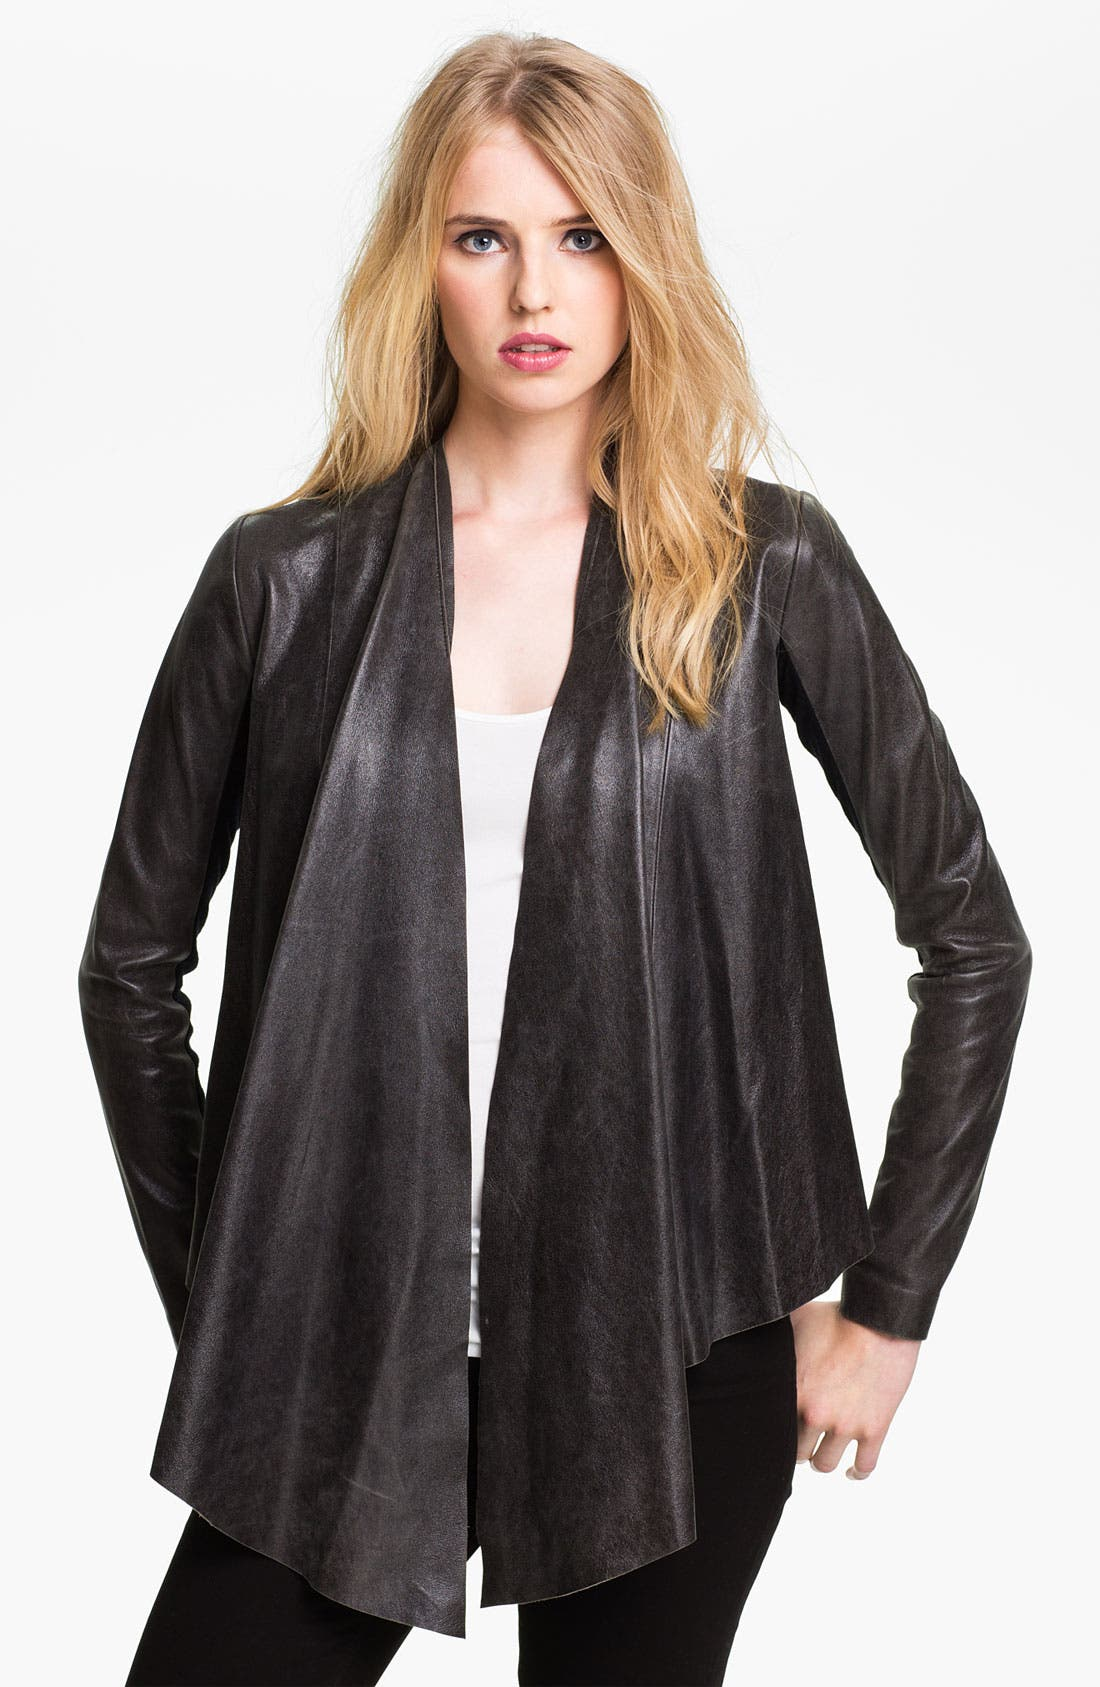 Alternate Image 1 Selected - Veda 'Libra' Drape Front Leather Jacket